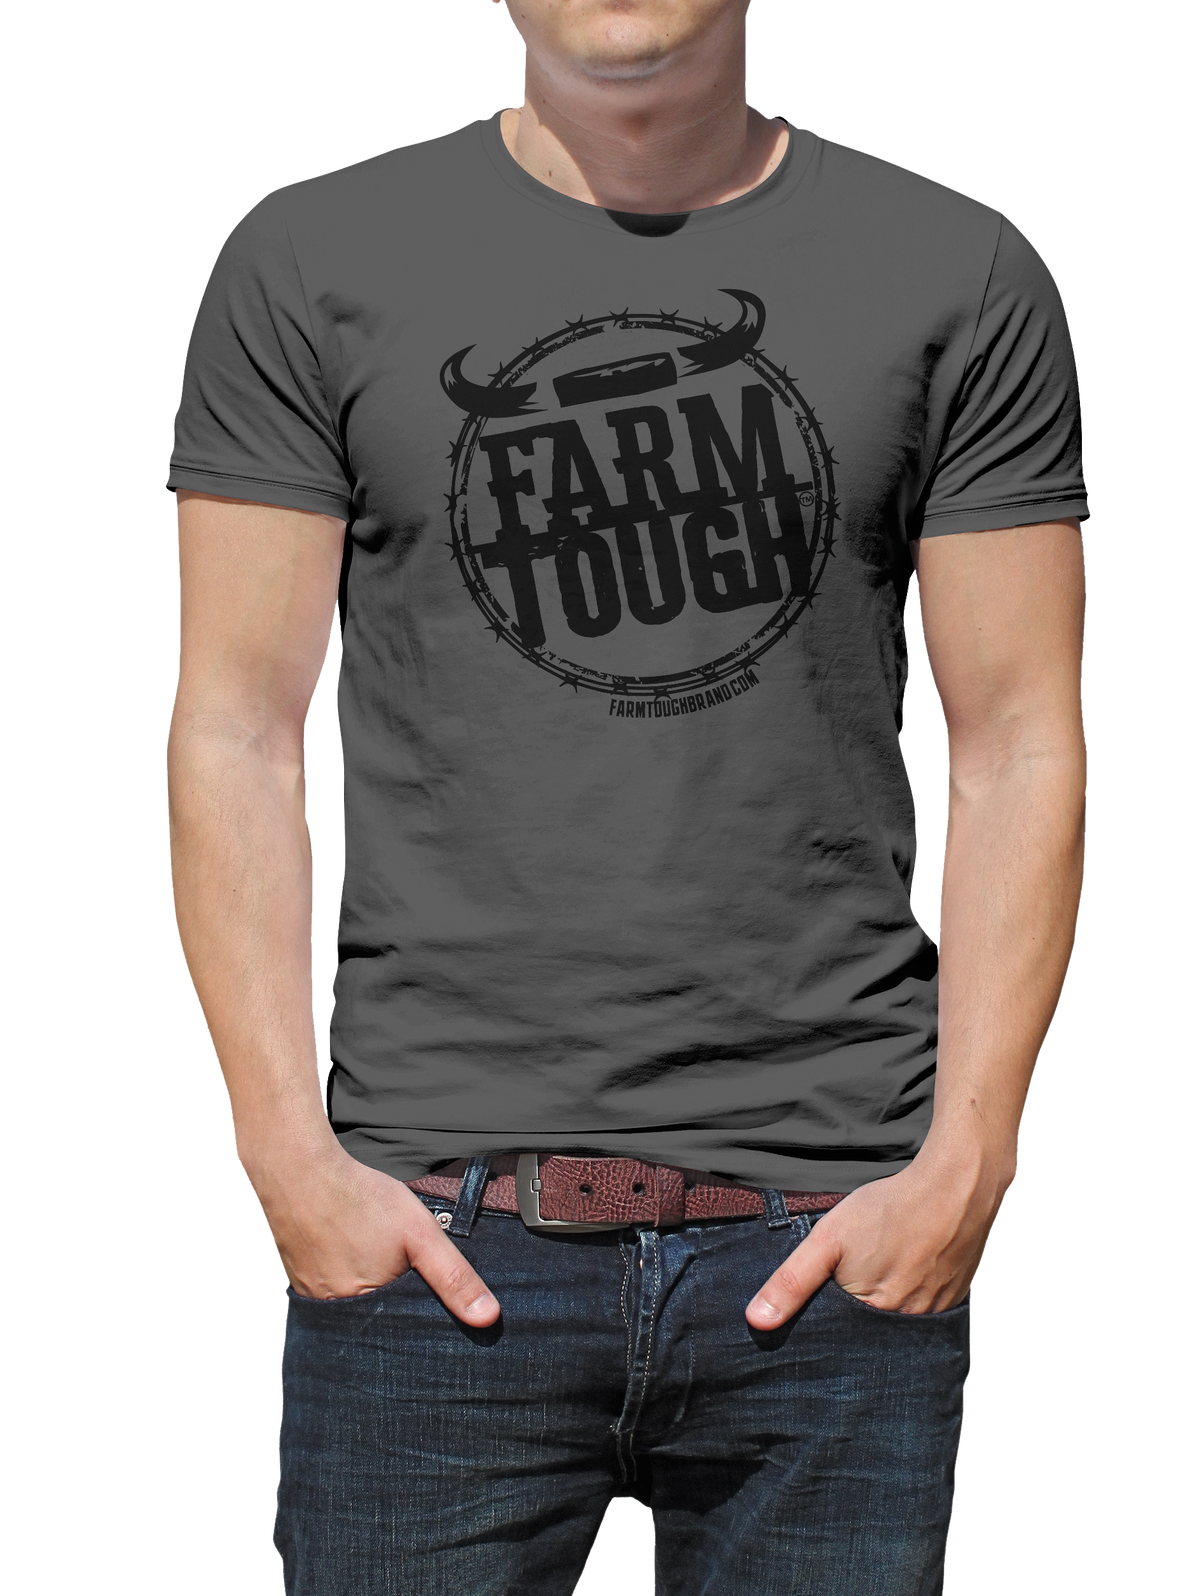 #FarmTough - Barbed Wire w/ Steer Horns - T Shirt